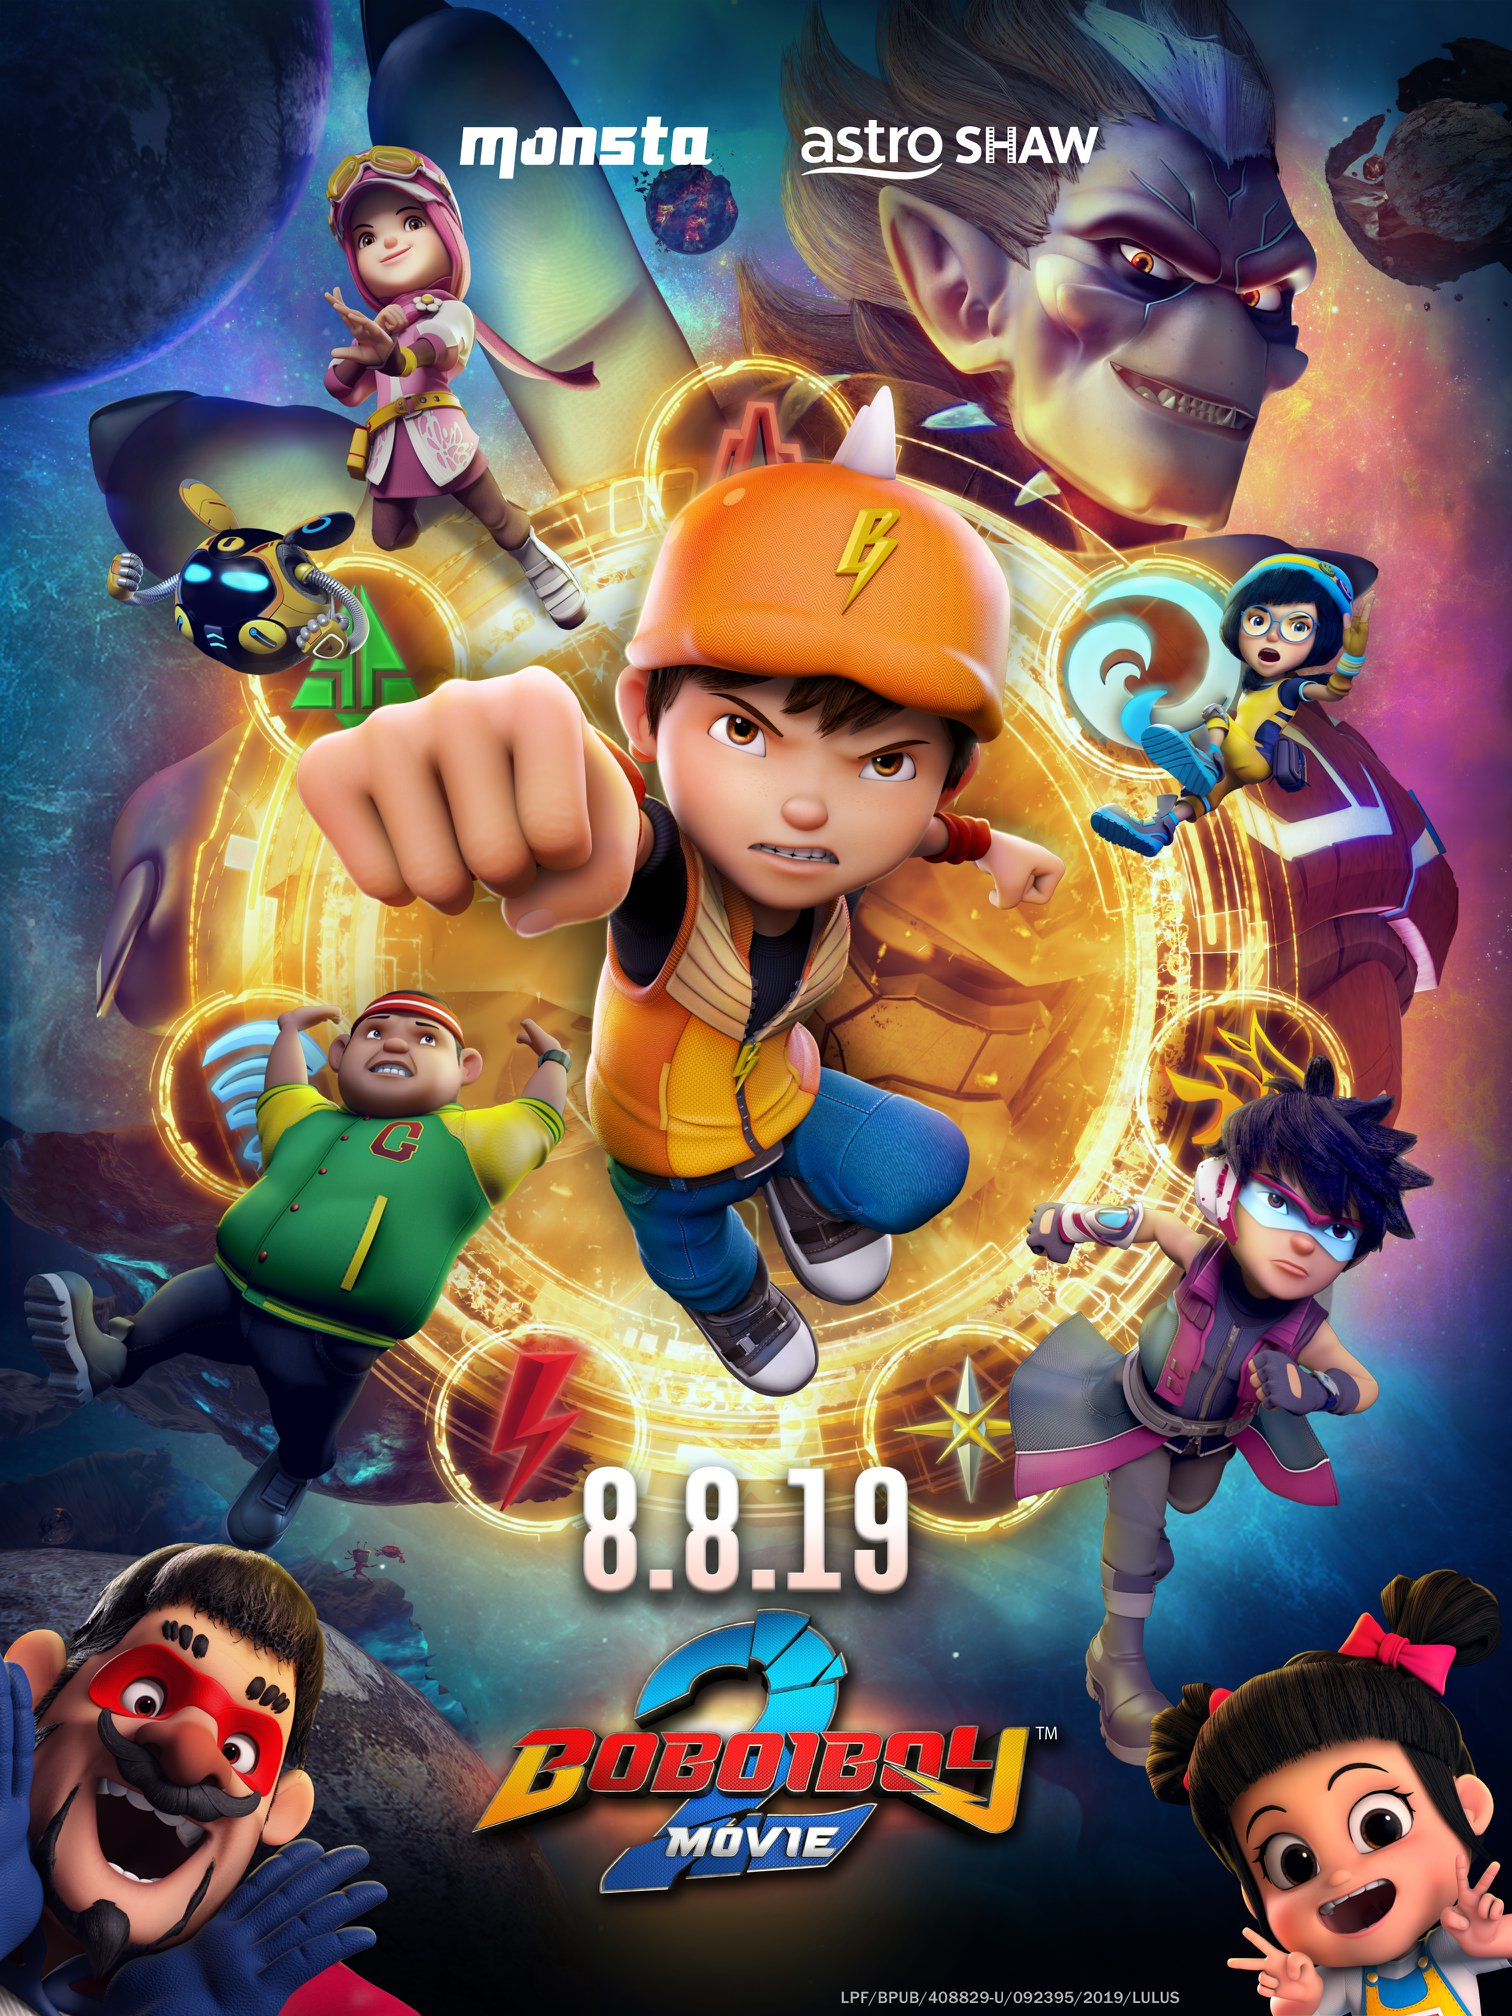 Boboiboy Movie 2 2019 Imdb